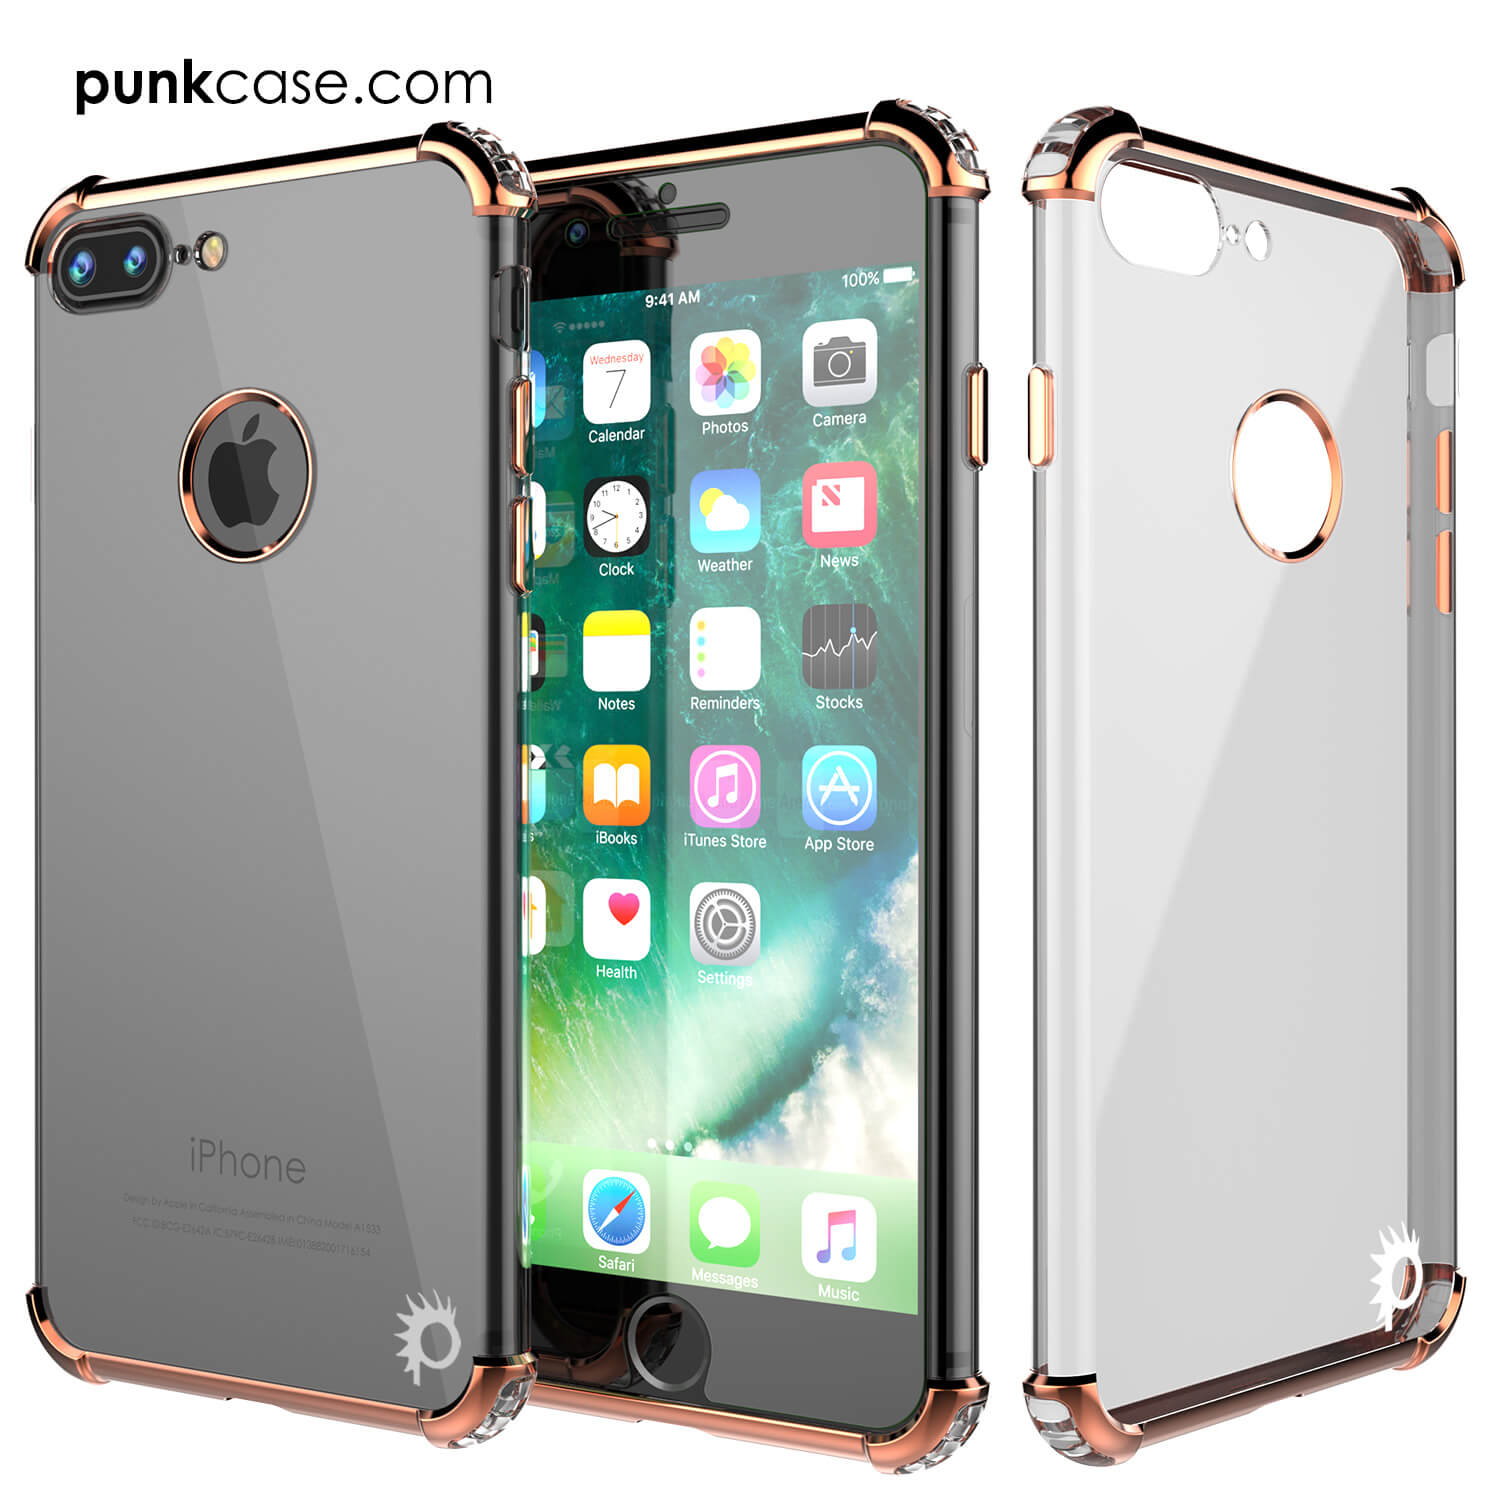 iPhone 7 PLUS Case, Punkcase [BLAZE RoseGold SERIES] Protective Cover W/ PunkShield Screen Protector